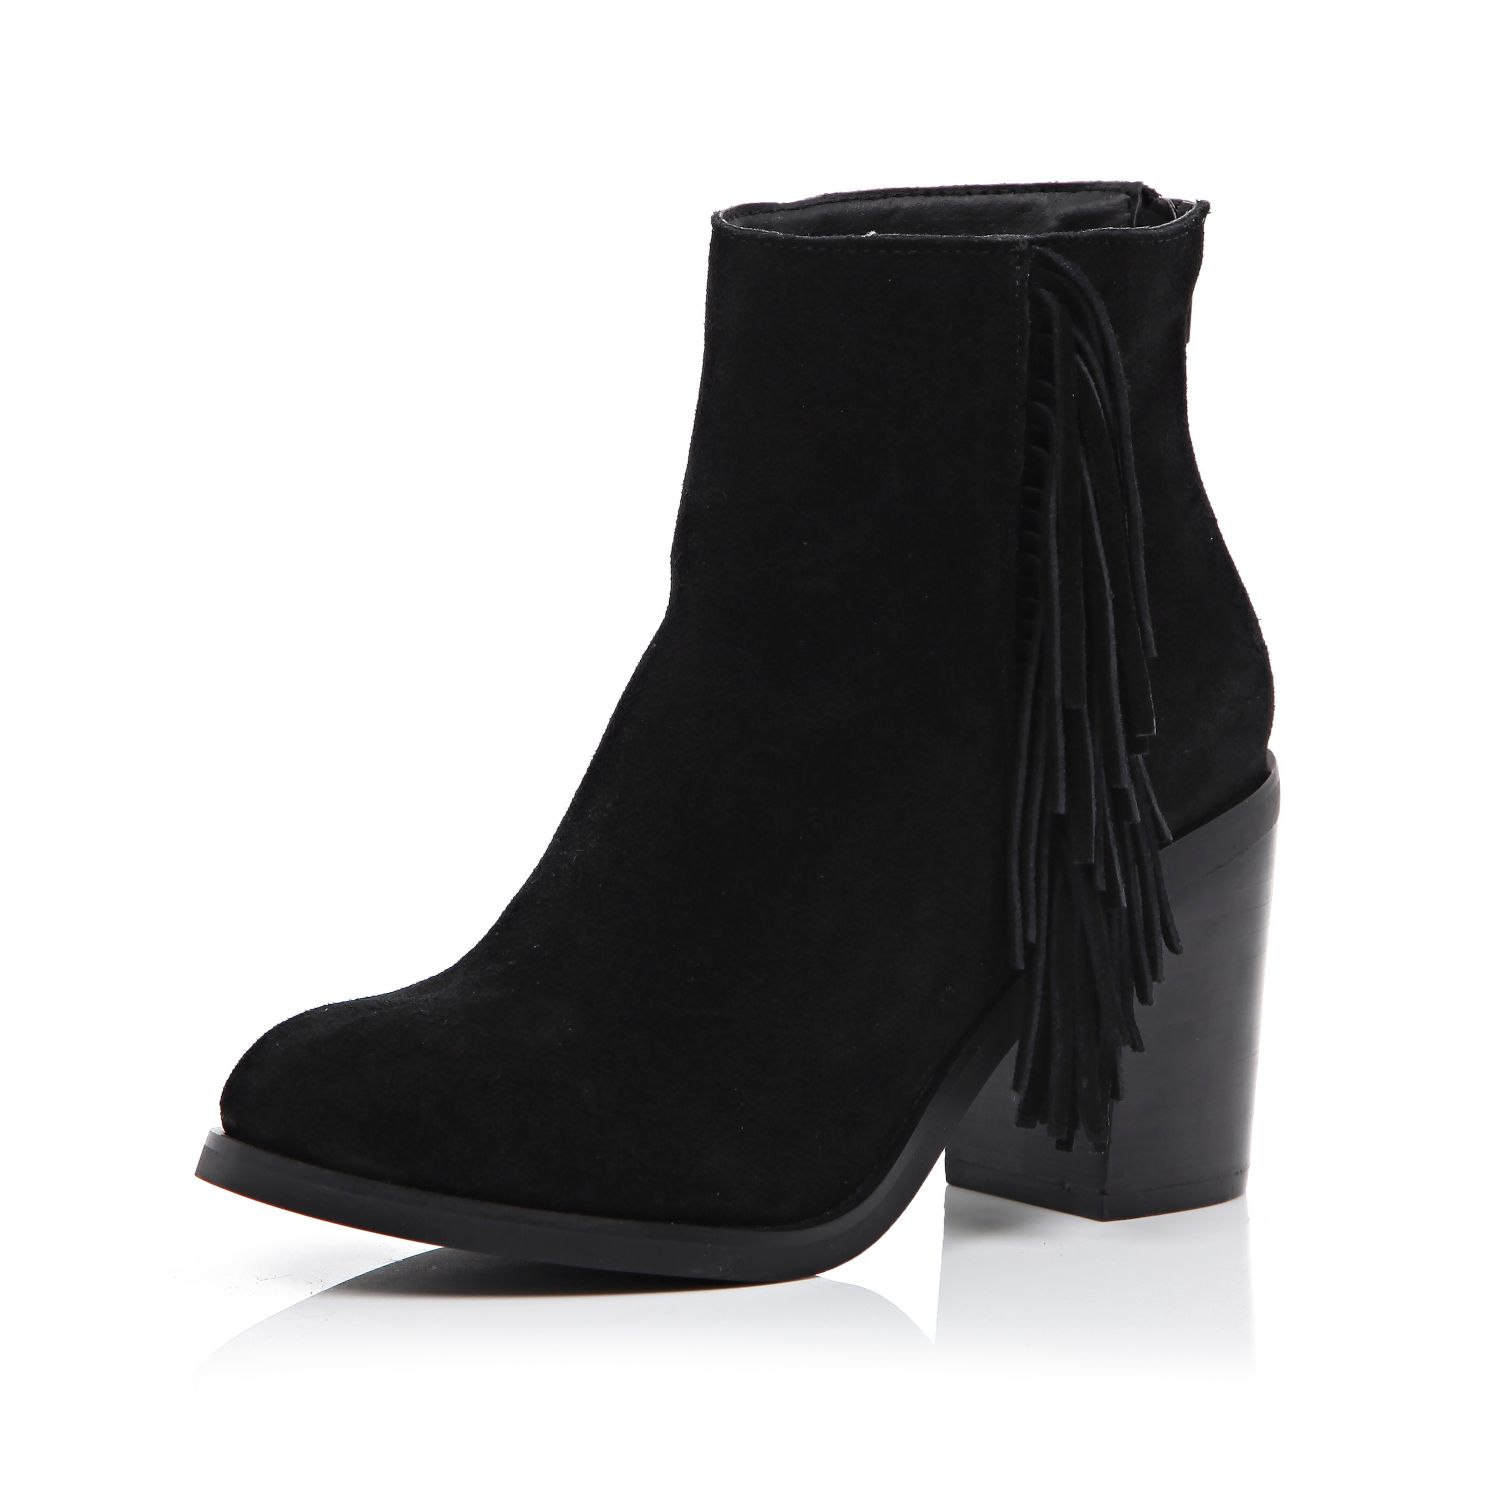 river island black suede fringed ankle boots in black lyst